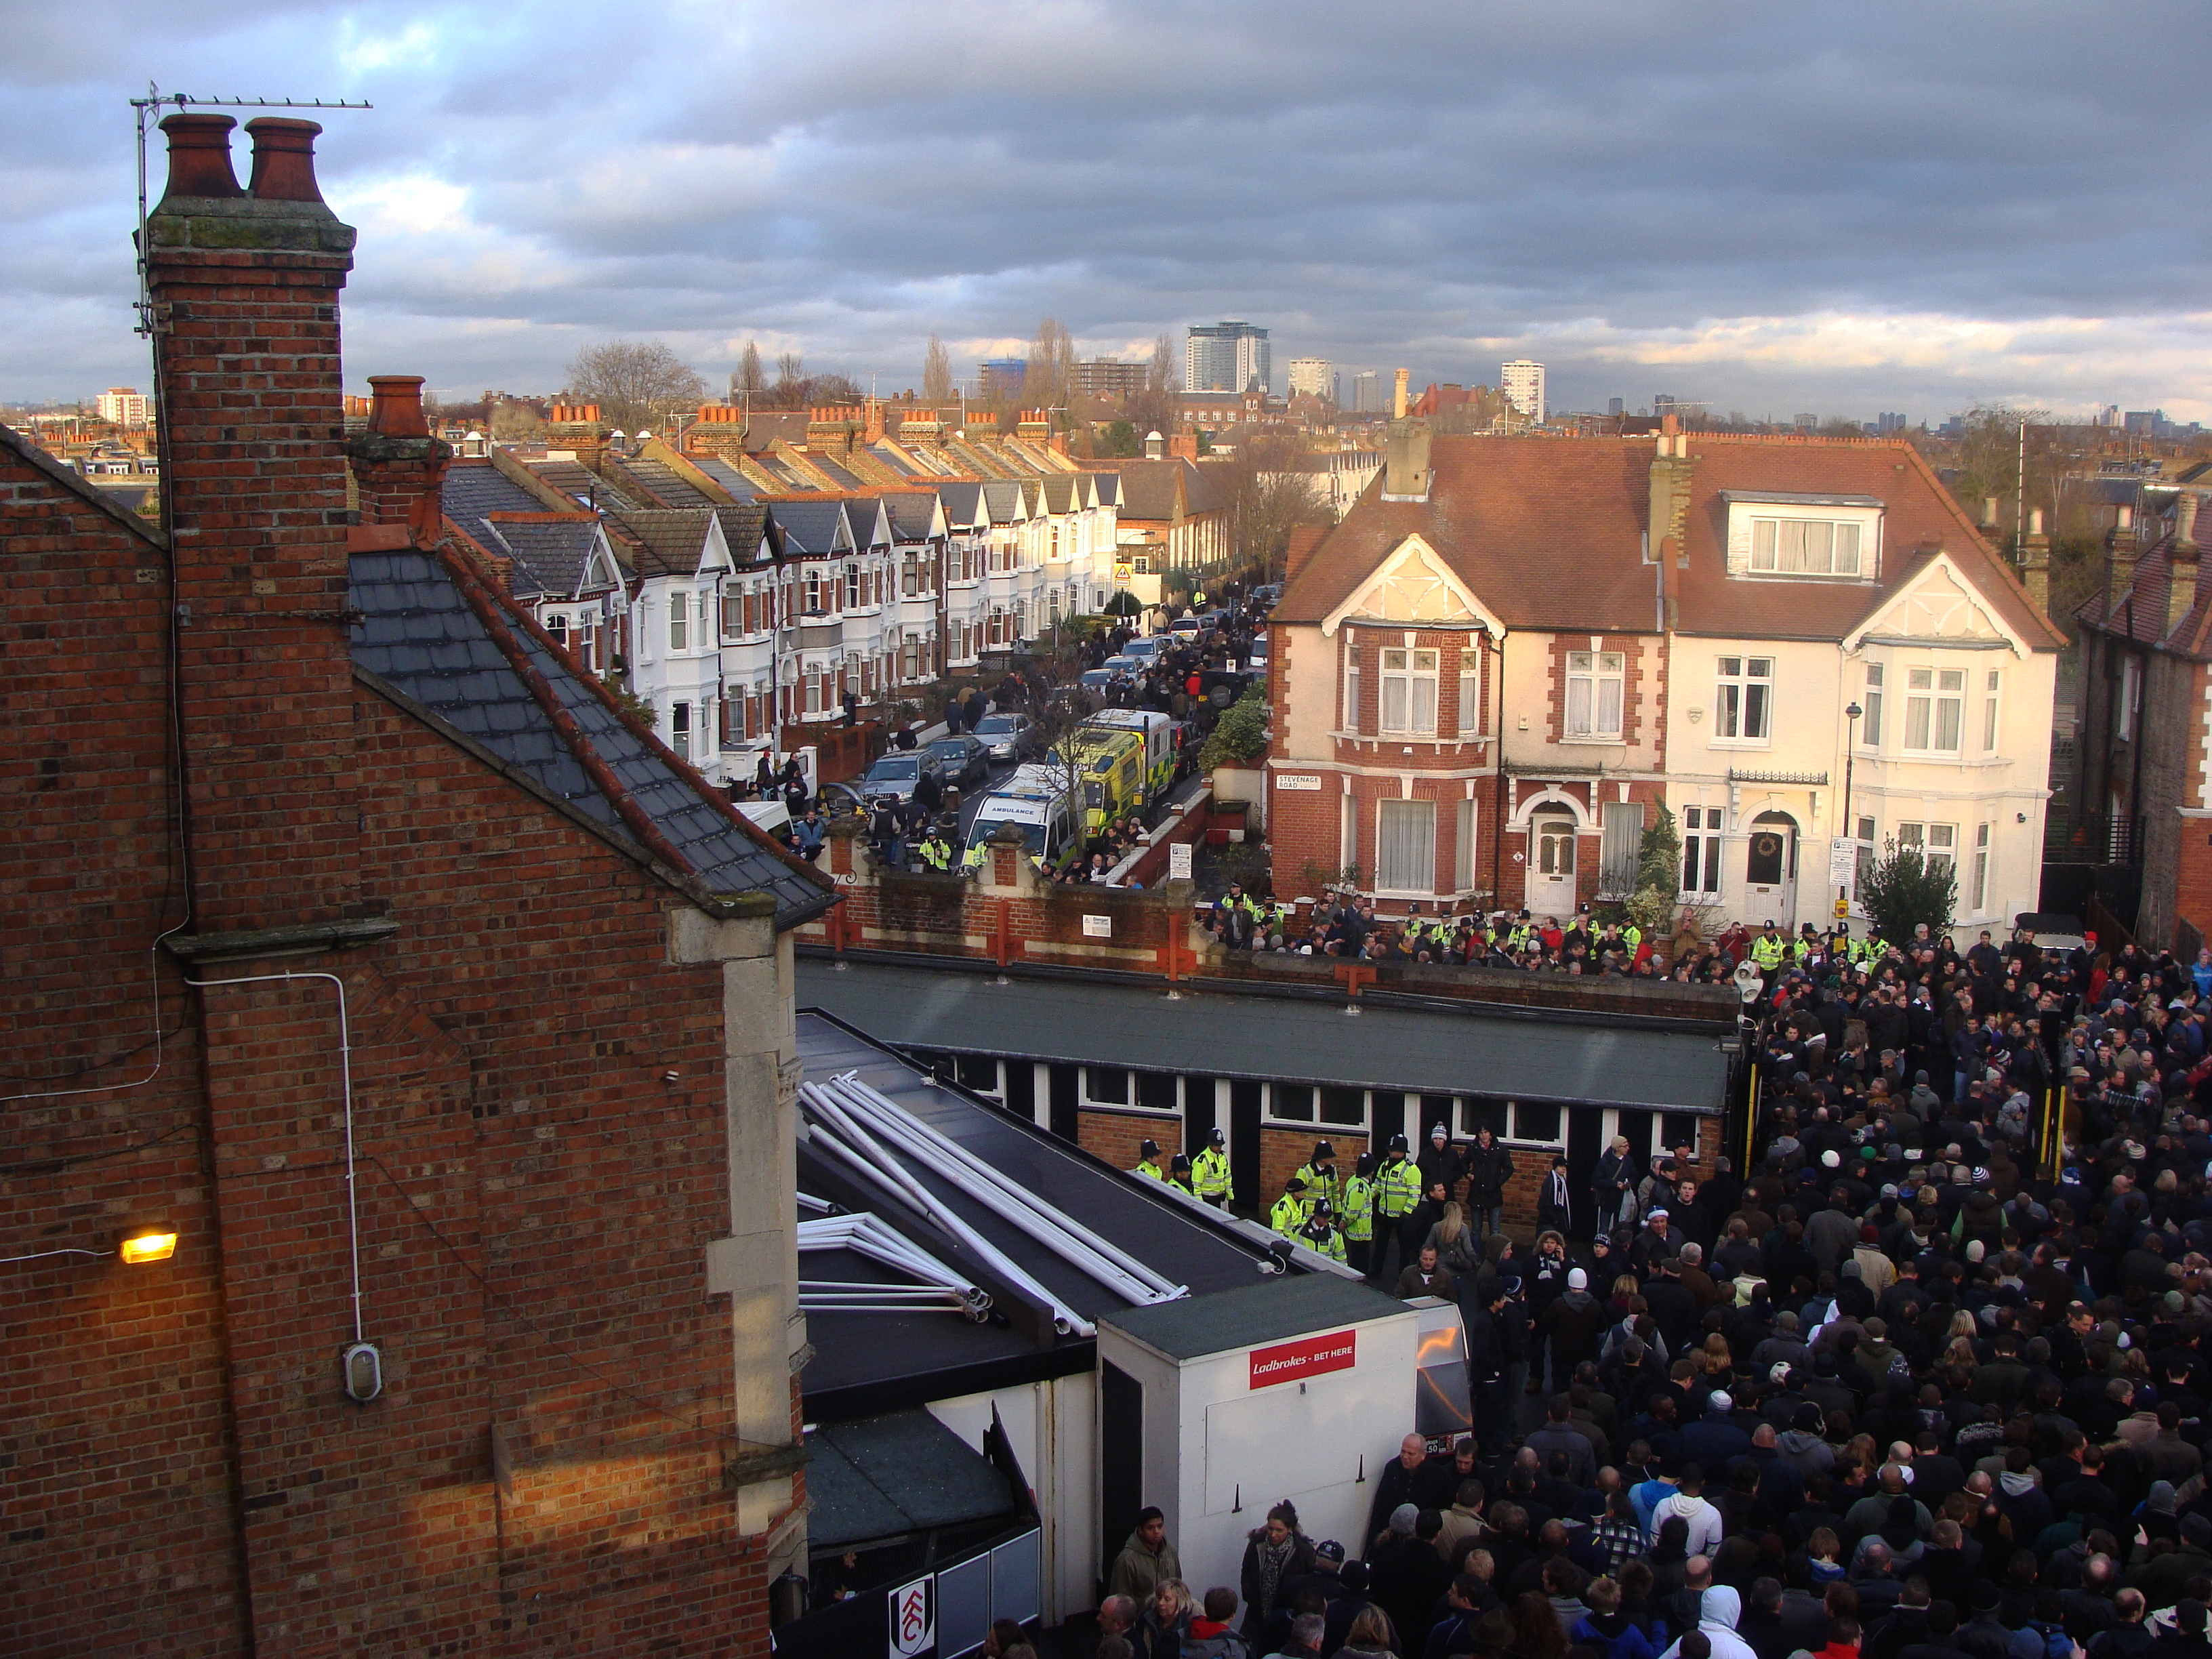 File:Craven Cottage 2009 Fulham V Spurs.jpg